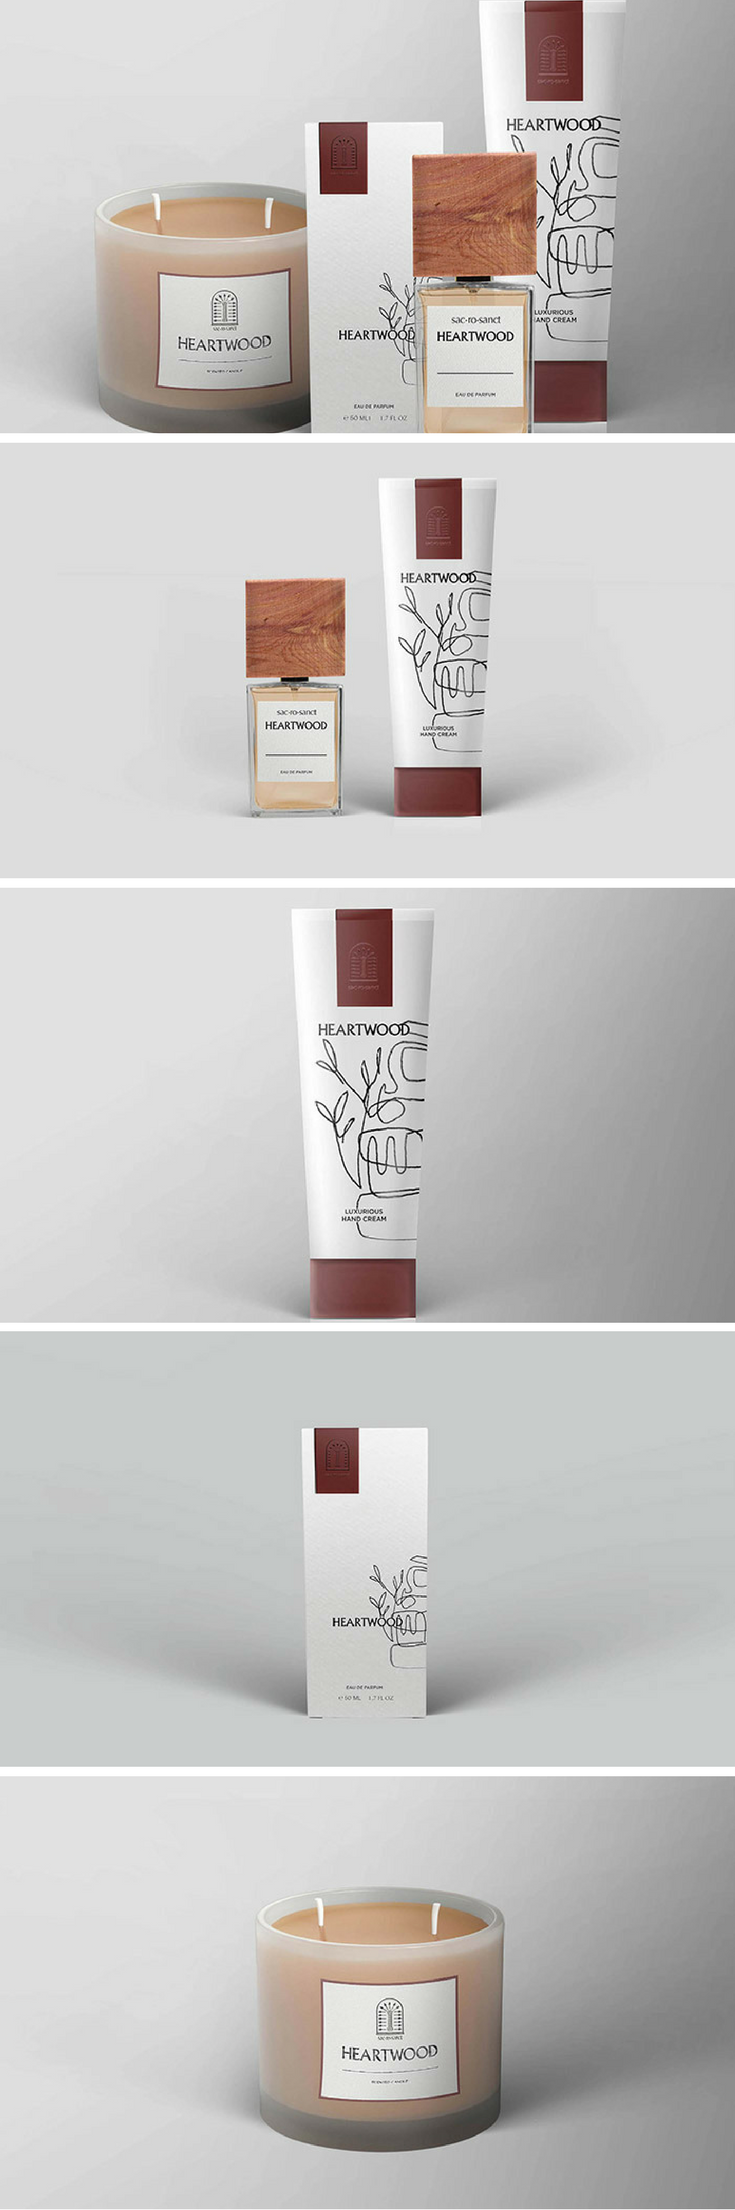 New box truck heartwood manufacturing - Heartwood Candle Fragrance Cream Packaging Designed By Kate Haas